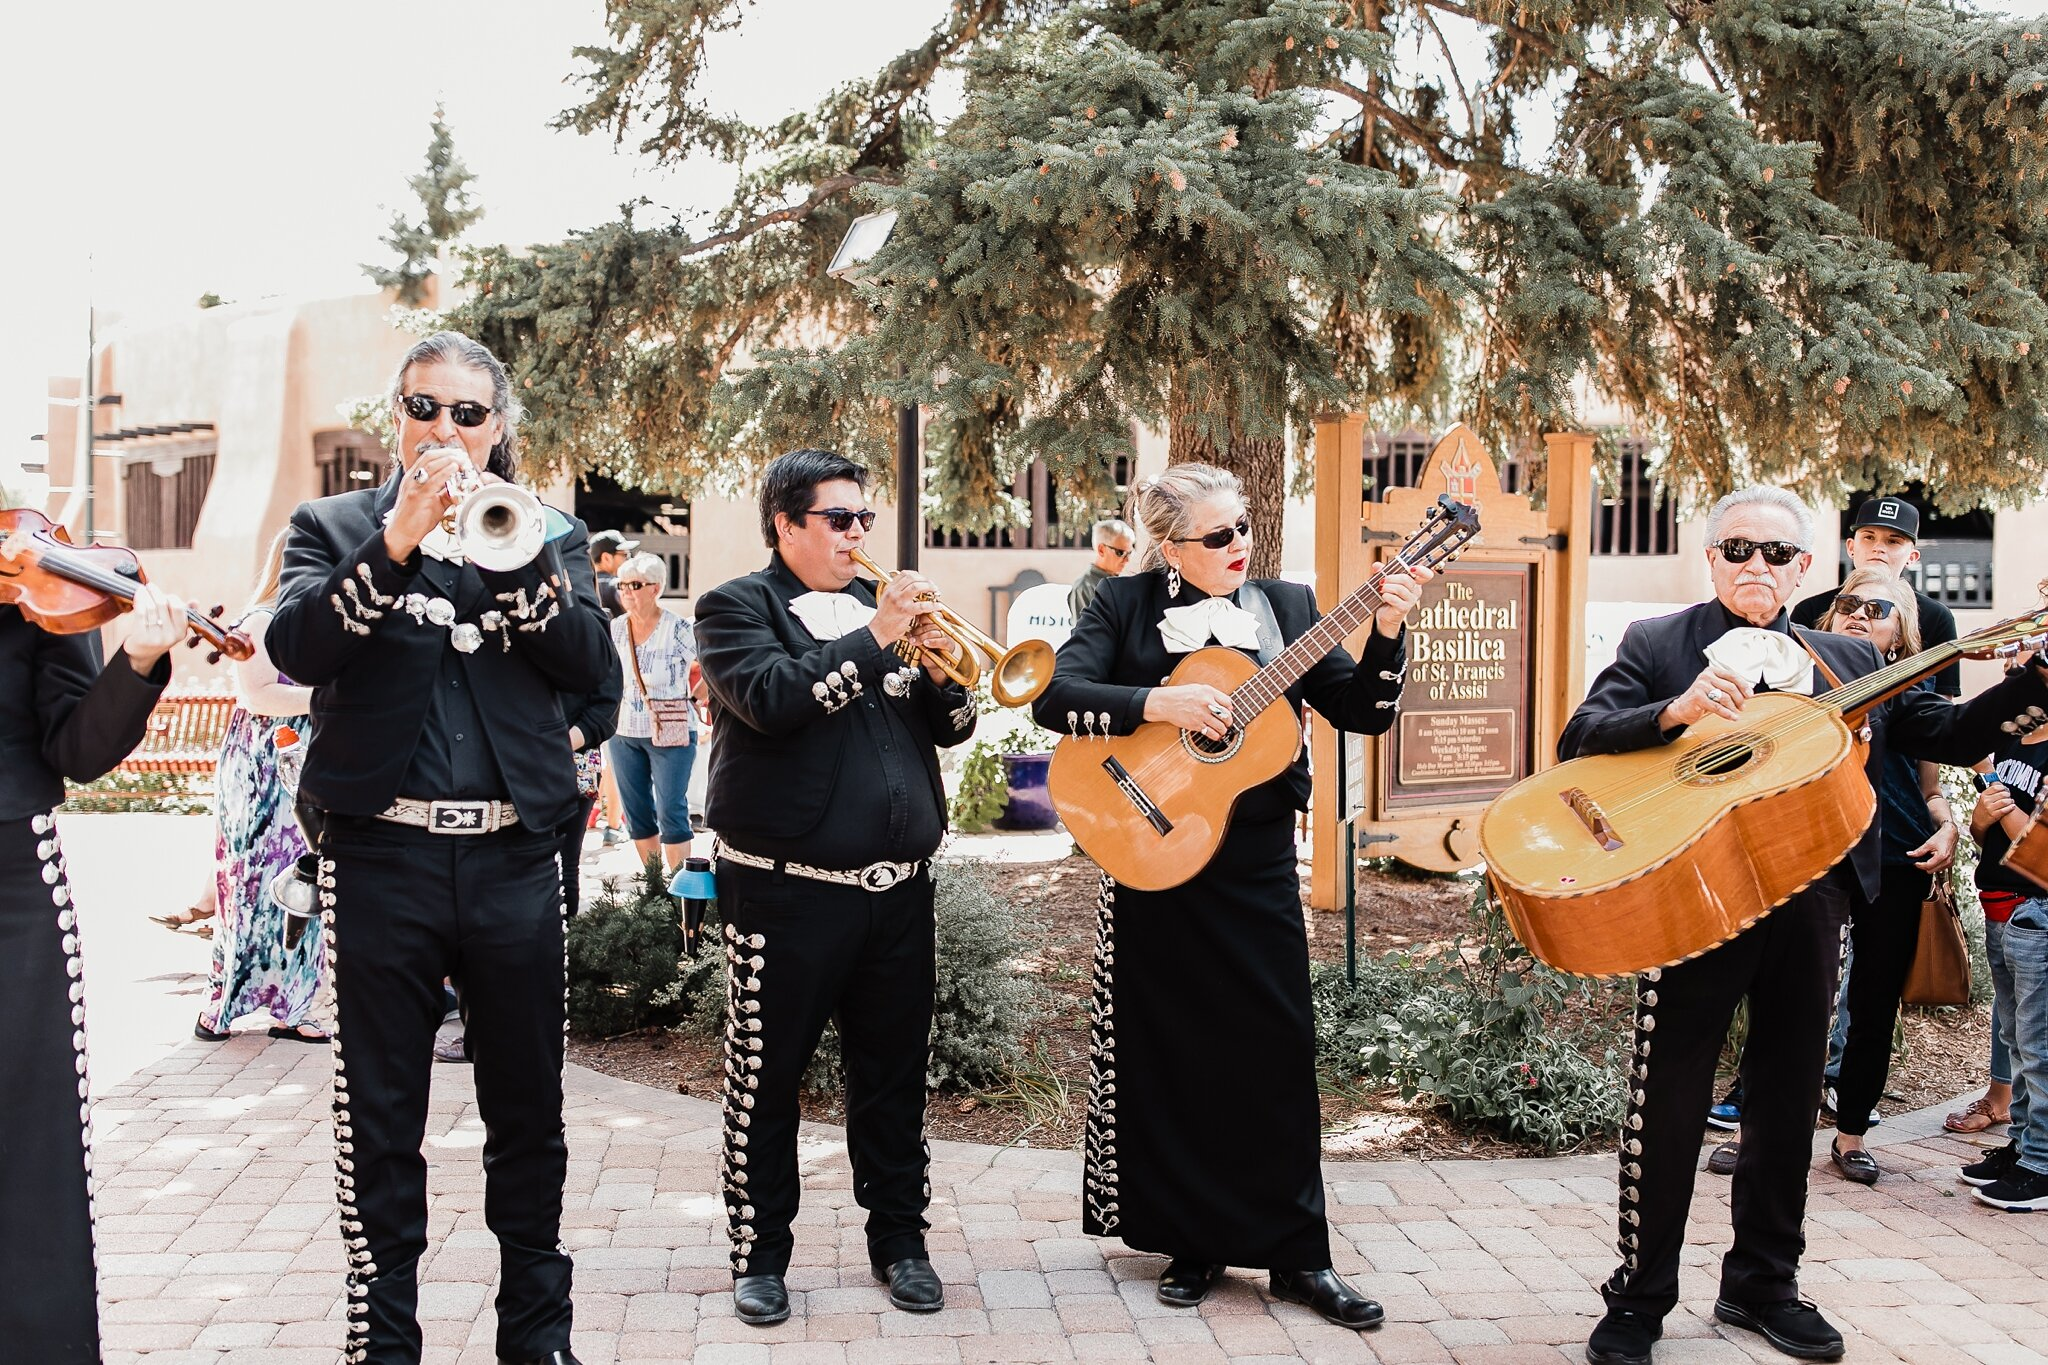 Alicia+lucia+photography+-+albuquerque+wedding+photographer+-+santa+fe+wedding+photography+-+new+mexico+wedding+photographer+-+new+mexico+wedding+-+hindu+wedding+-+catholic+wedding+-+multicultural+wedding+-+santa+fe+wedding_0038.jpg